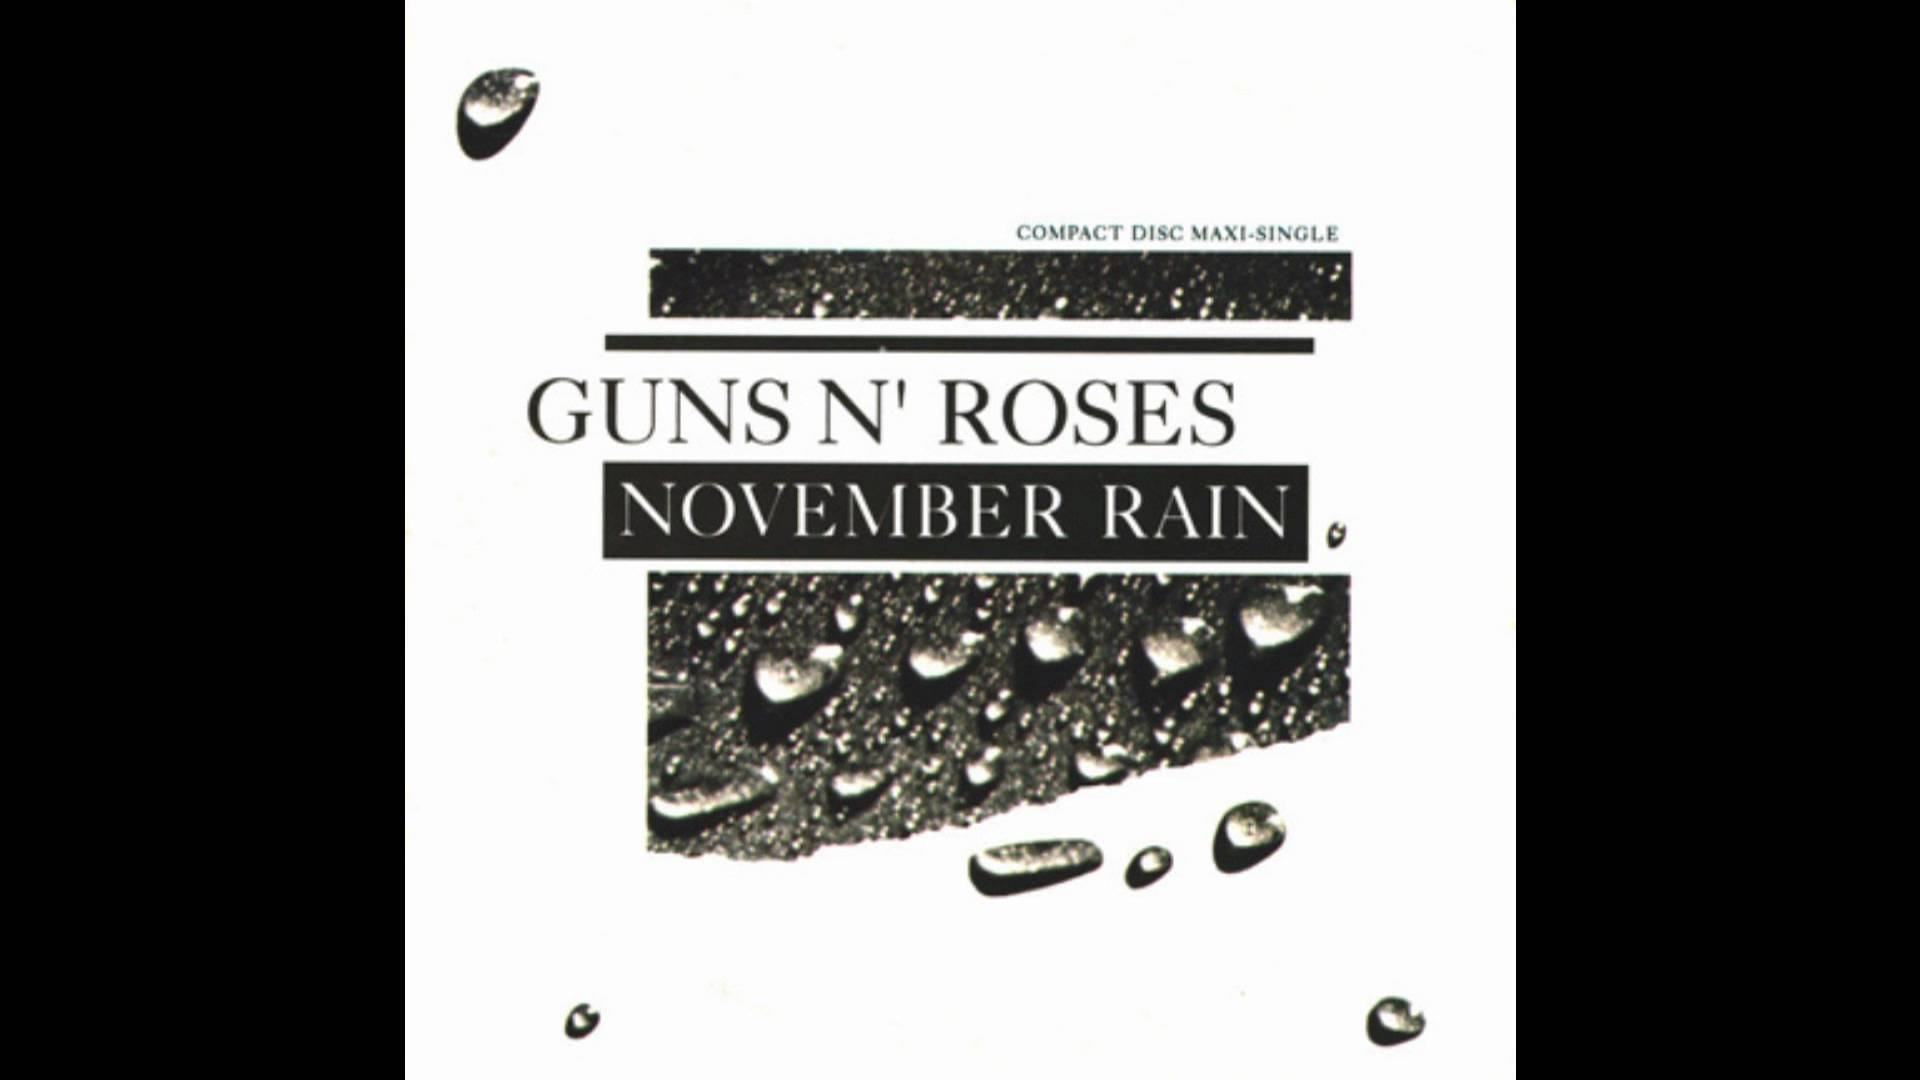 El sencillo de November Rain, en CD